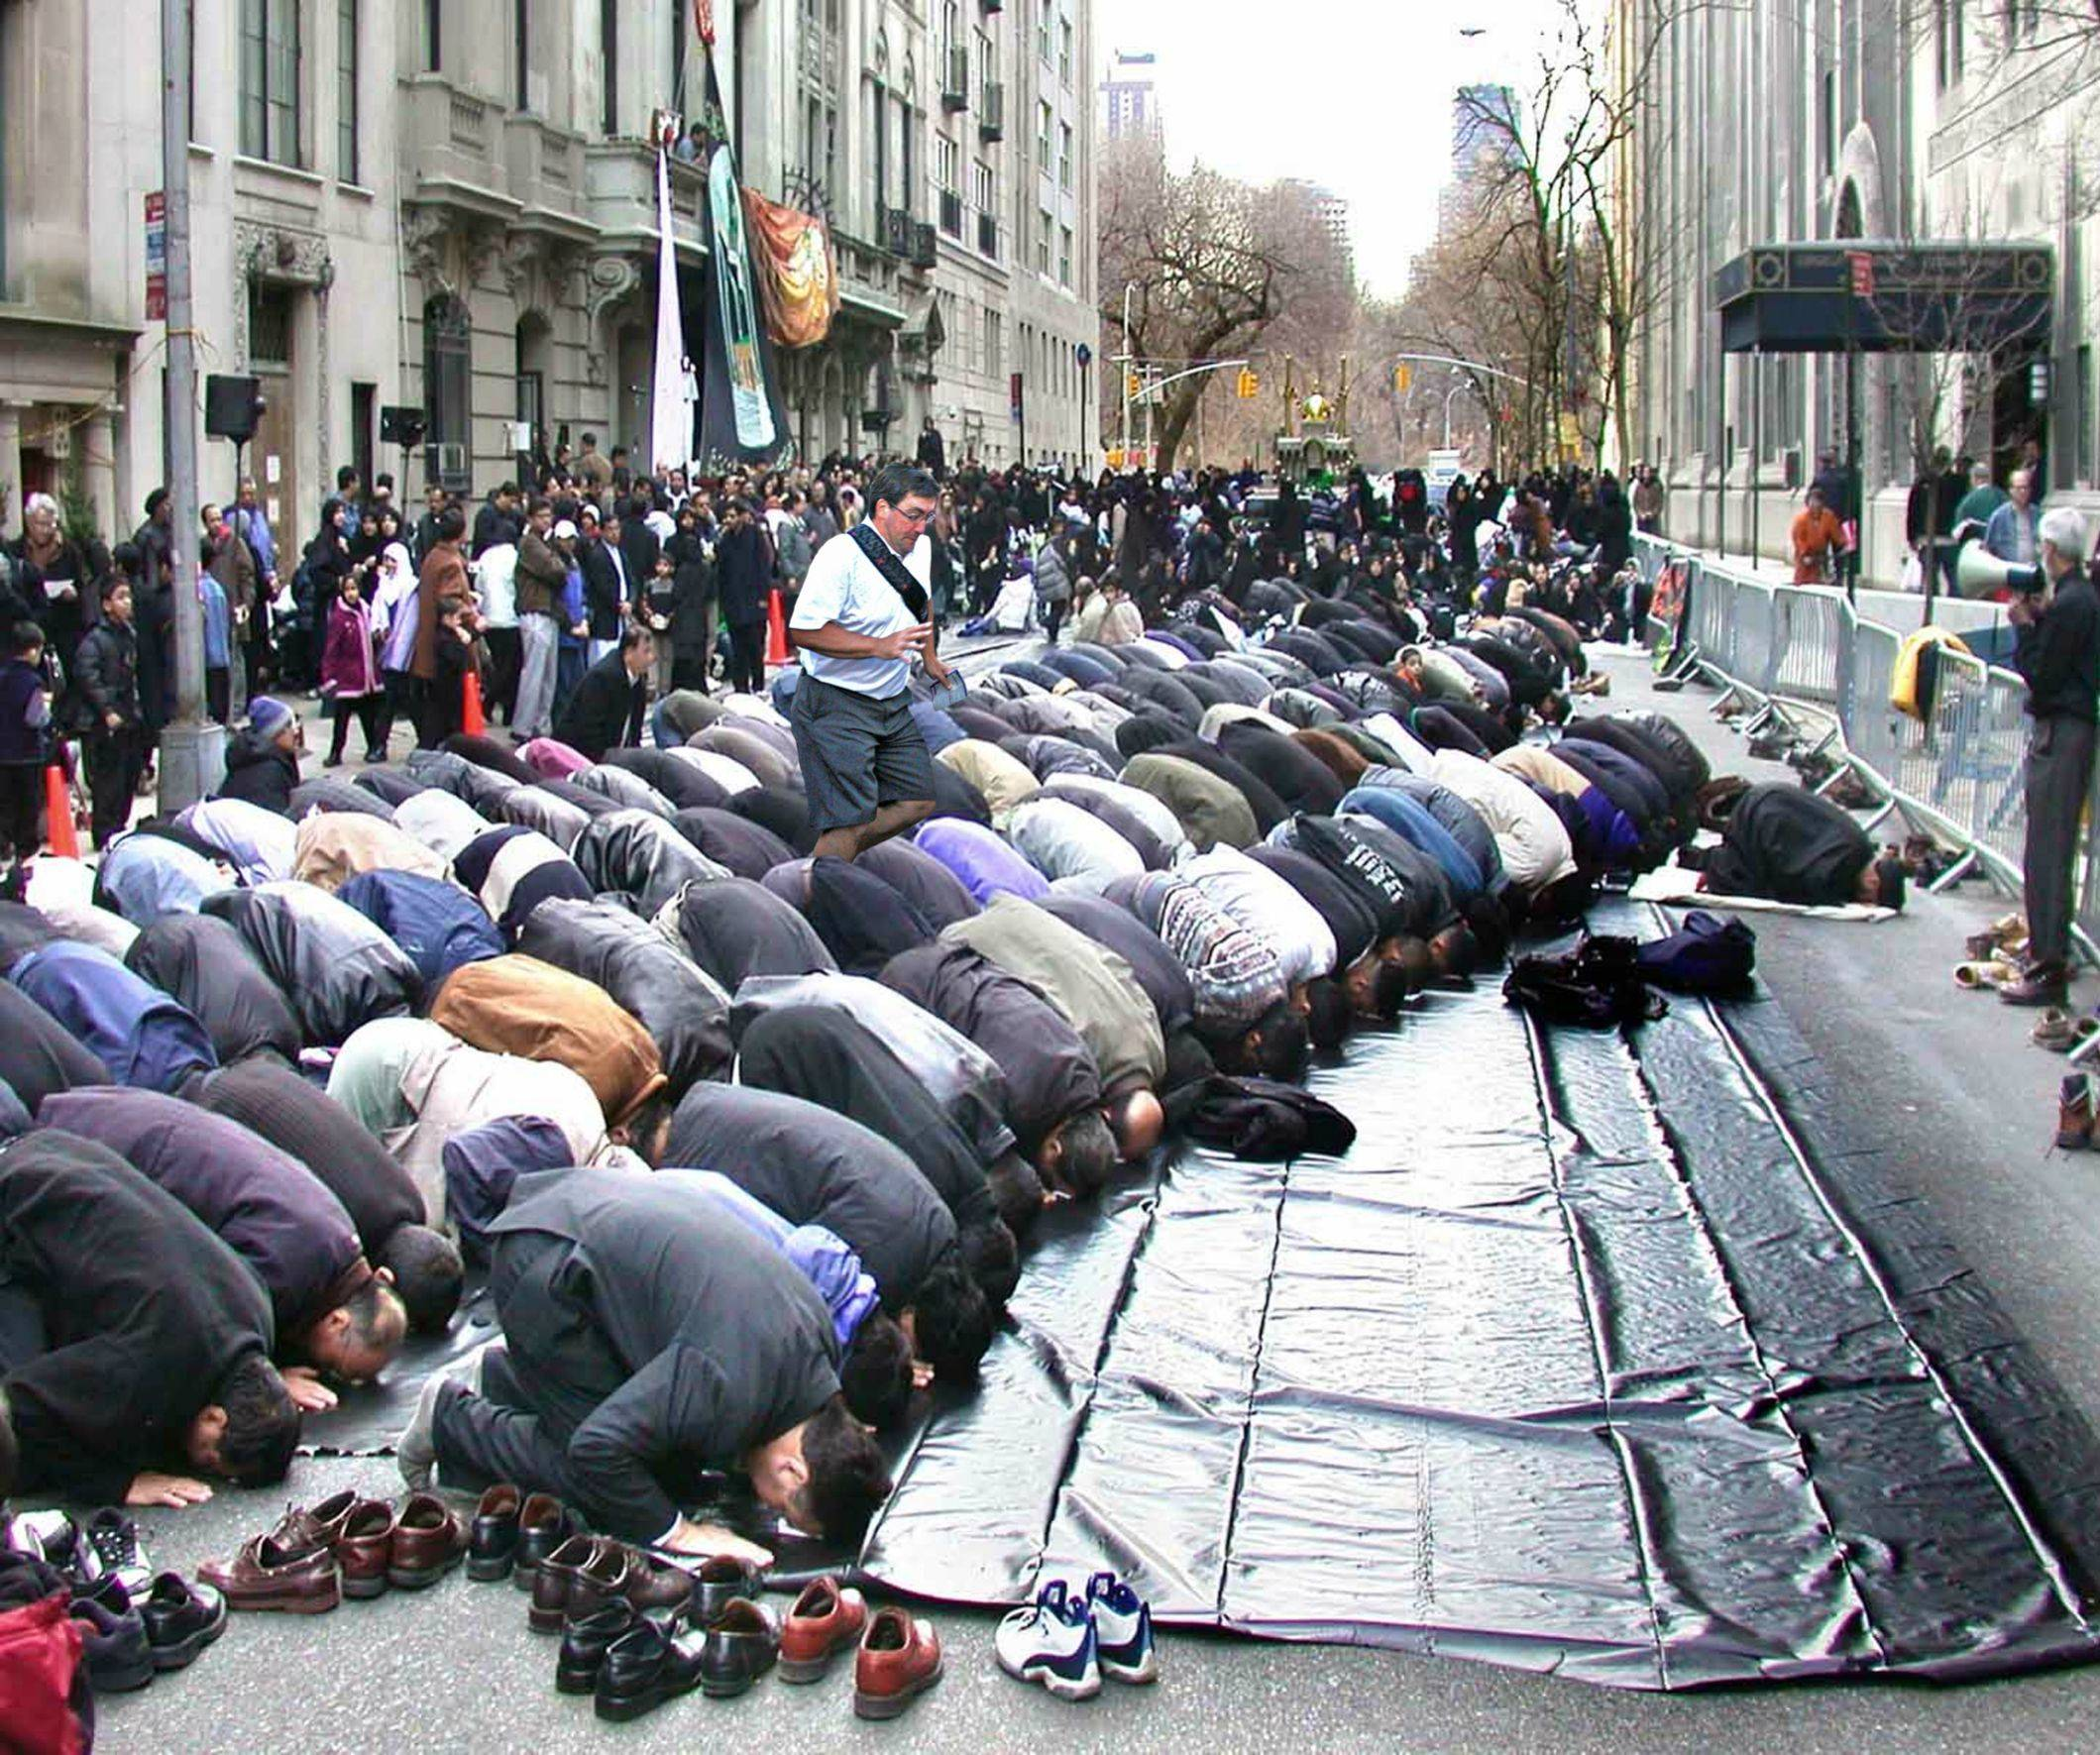 In The Way Guy Meme Stumbles Across The Praying Muslims in the way guy meme stumbles across the praying muslims